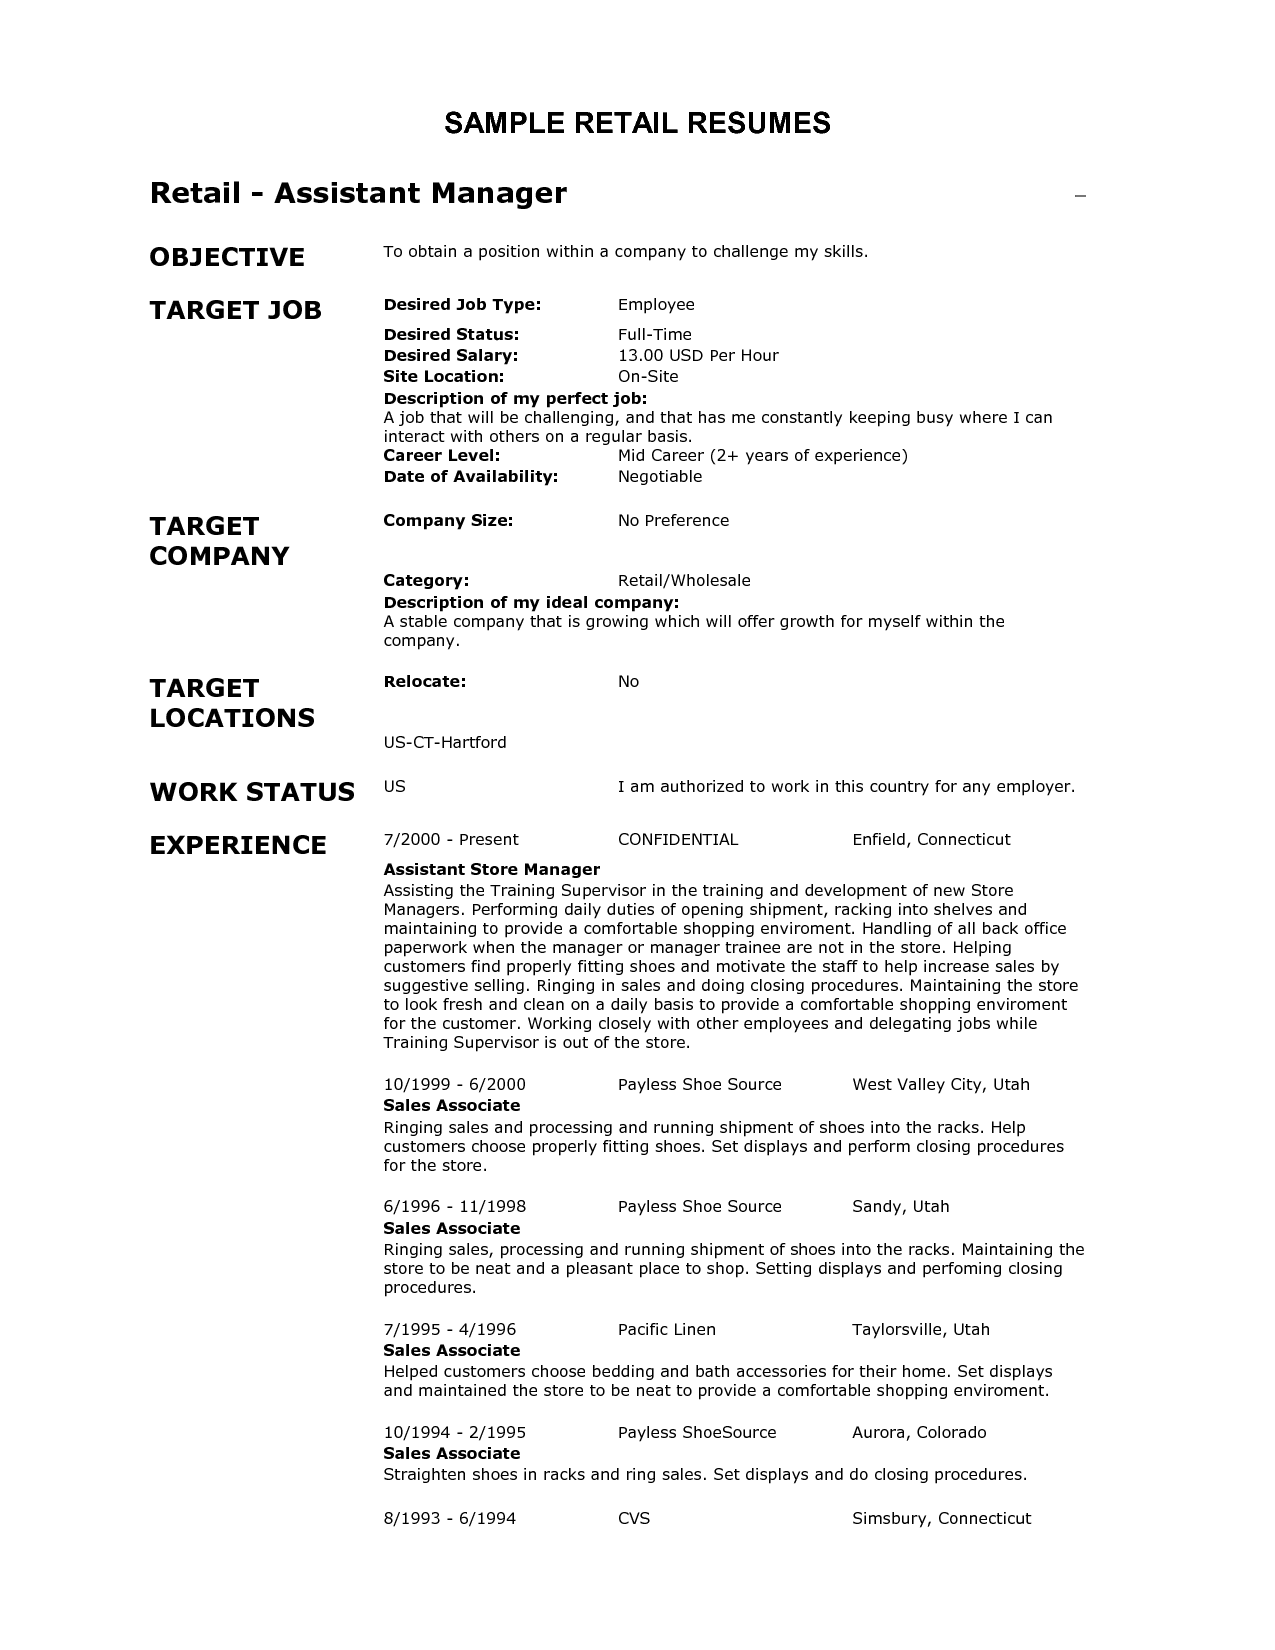 resume samples for retail management position